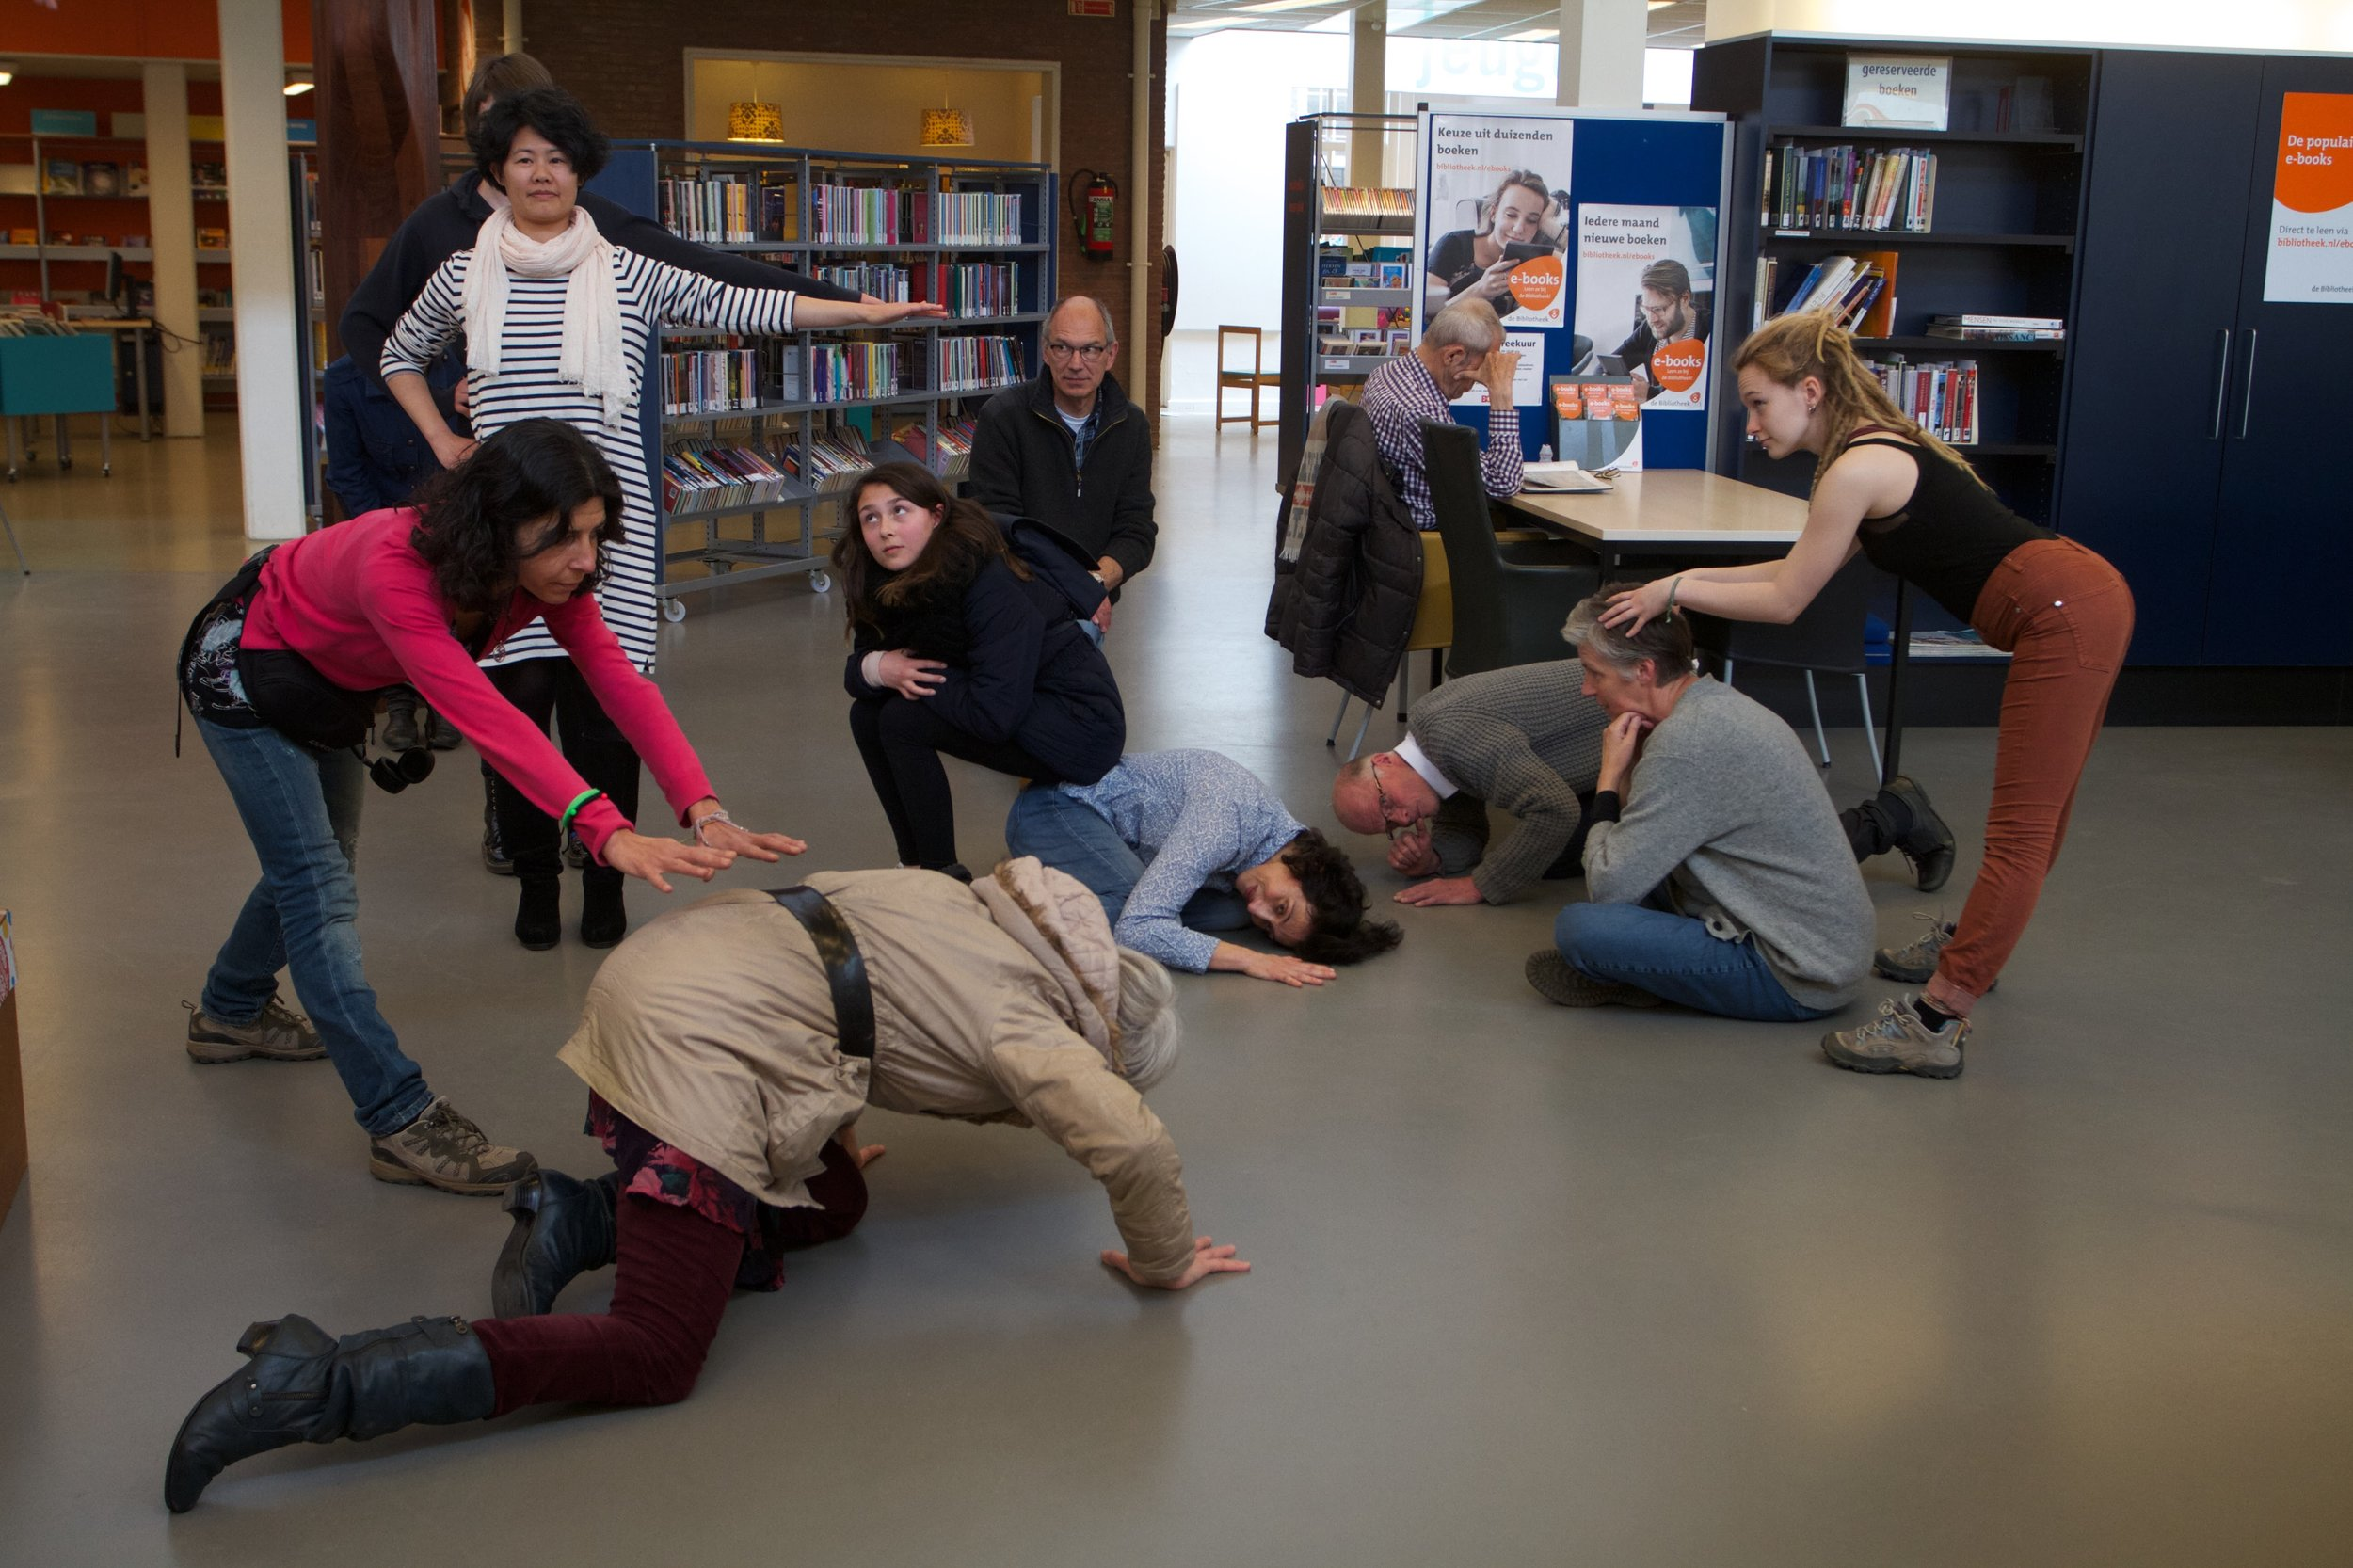 From  Dancing in the Library  (2016), an earlier dance project by Michailidou and Heller which, as  Belonging  (forthcoming), focuses on social engagement and participation.